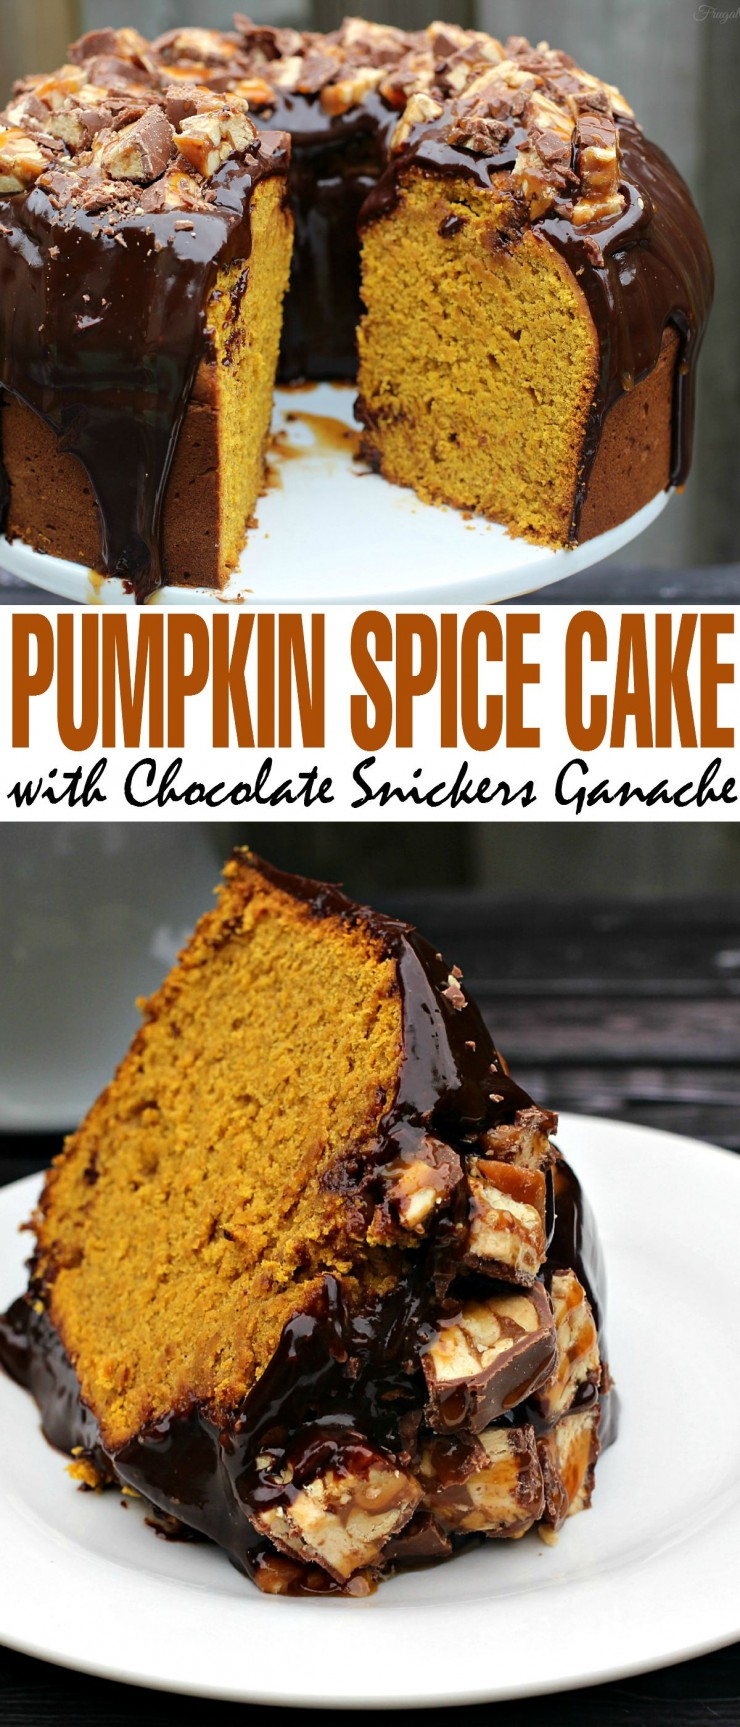 This Pumpkin Spice Cake with Chocolate Snickers Ganache is a decadent Fall Dessert that will have everyone asking you for the recipe!